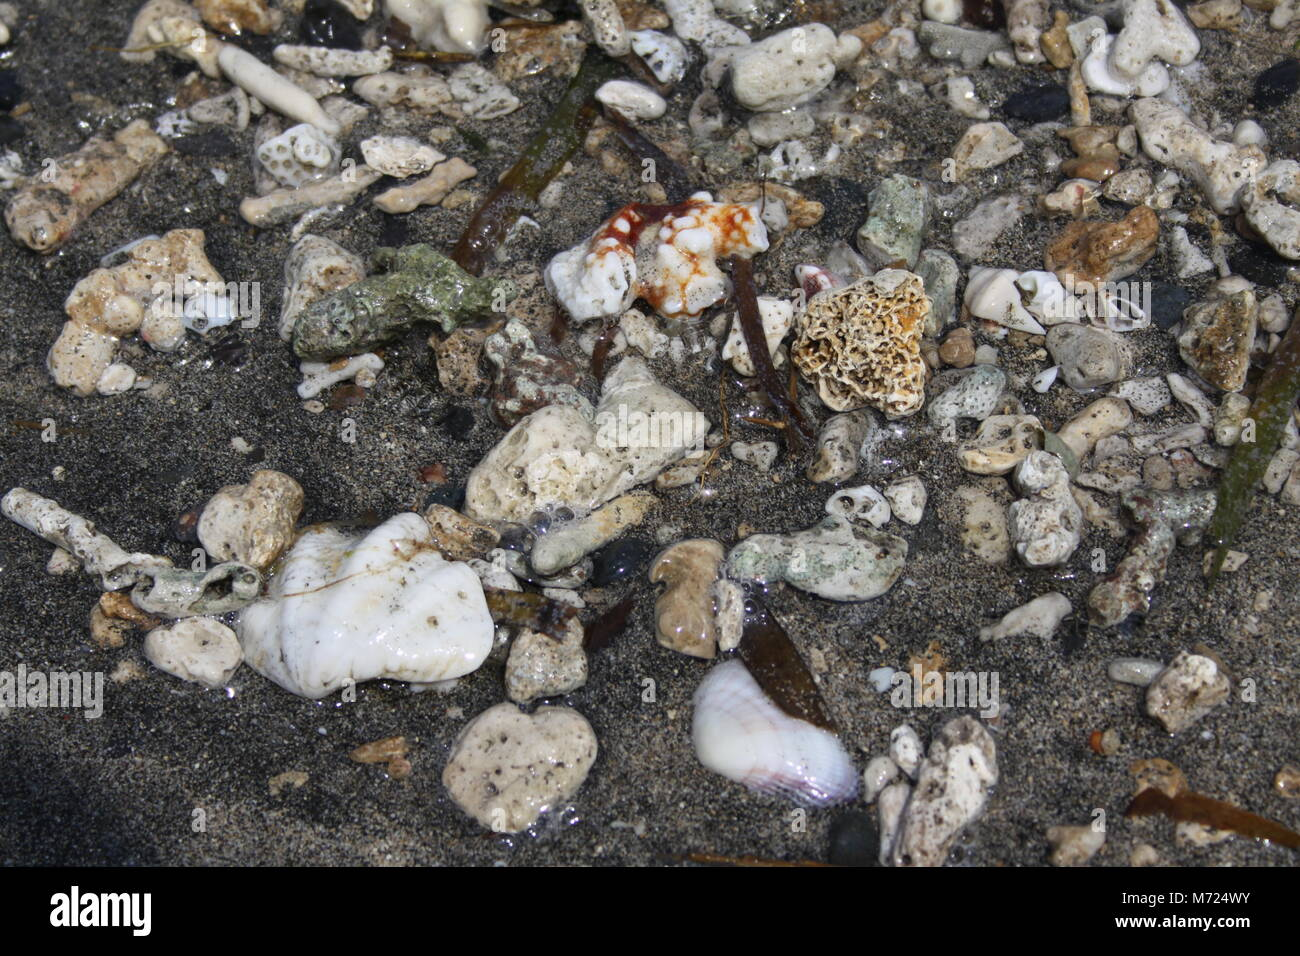 Sea shells at the beach - Stock Image